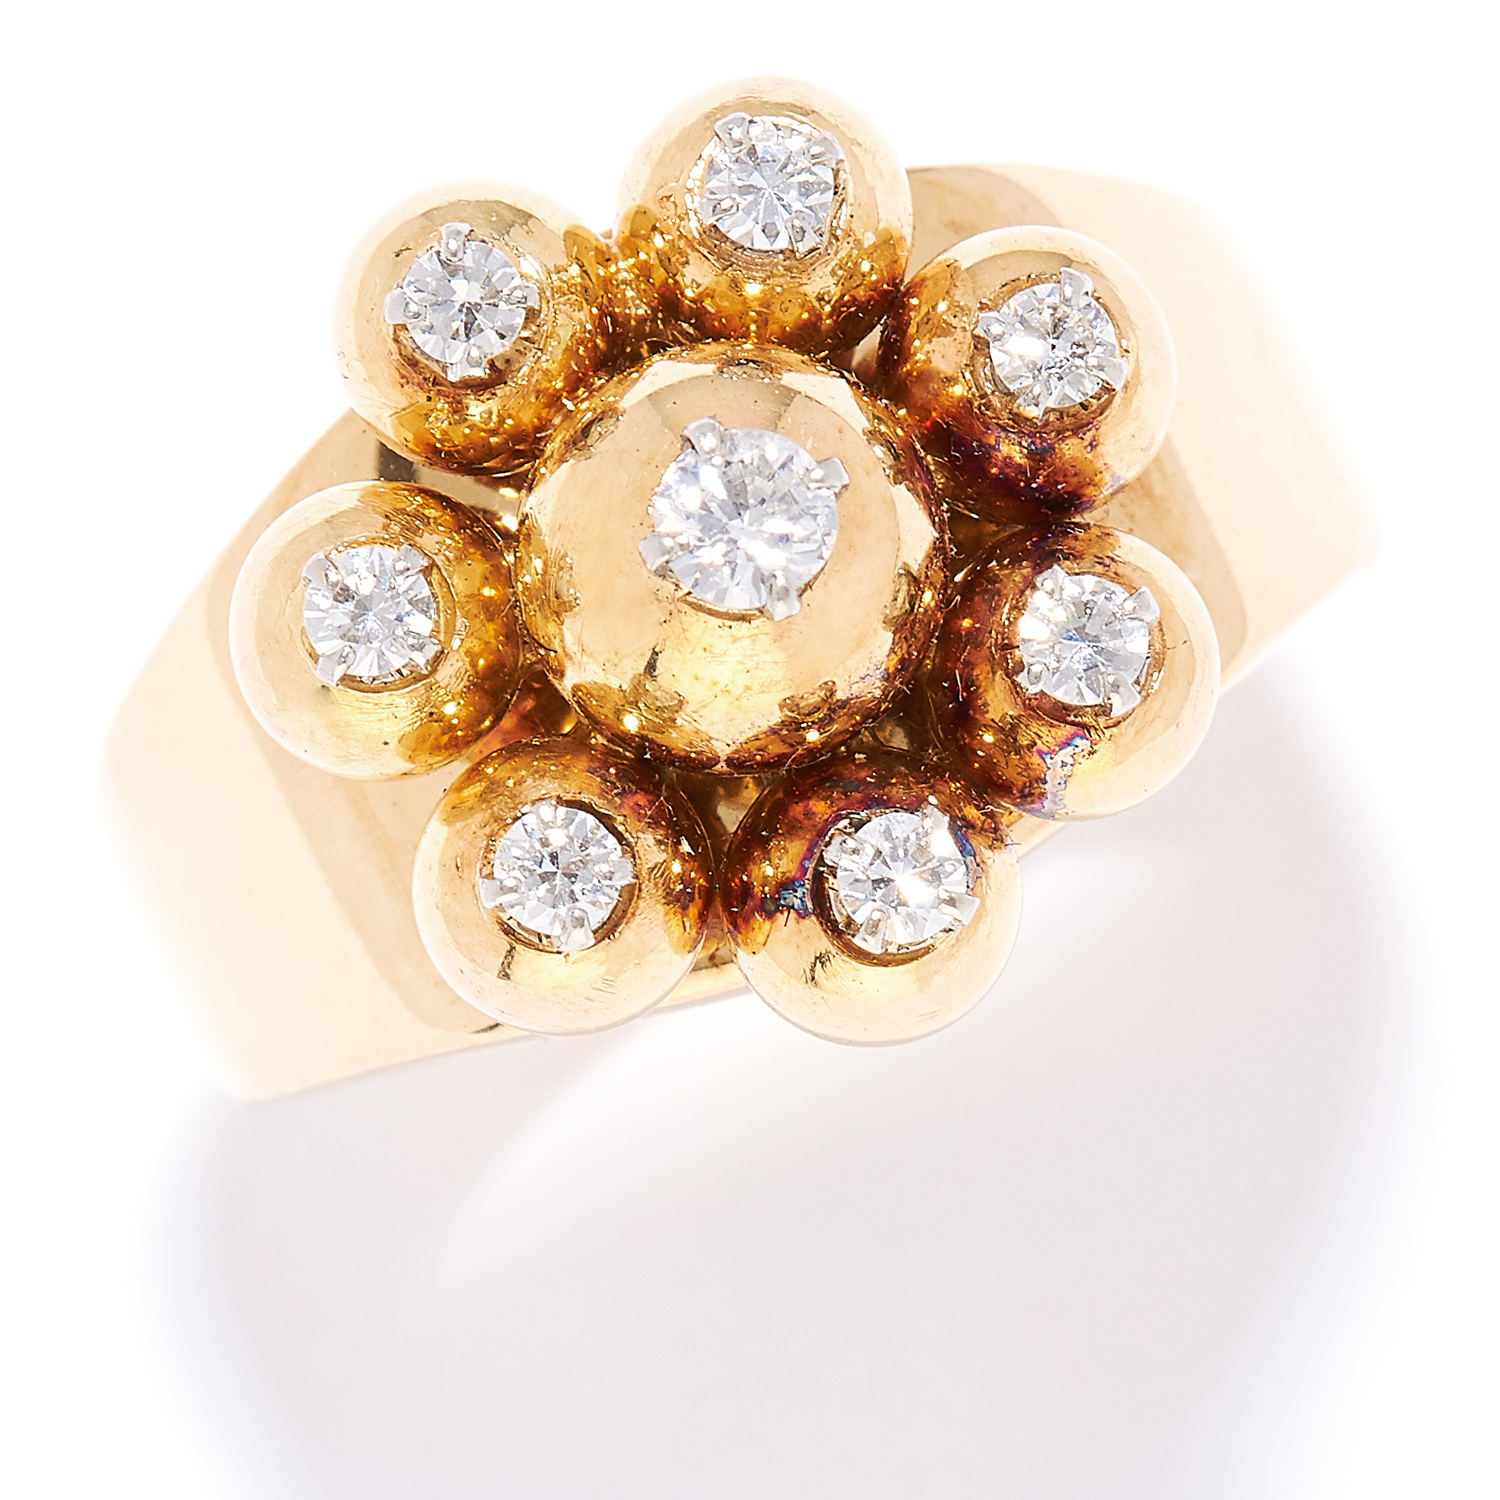 VINTAGE DIAMOND DRESS RING, CARTIER, CIRCA 1960 in 18ct yellow gold, set with round cut diamonds